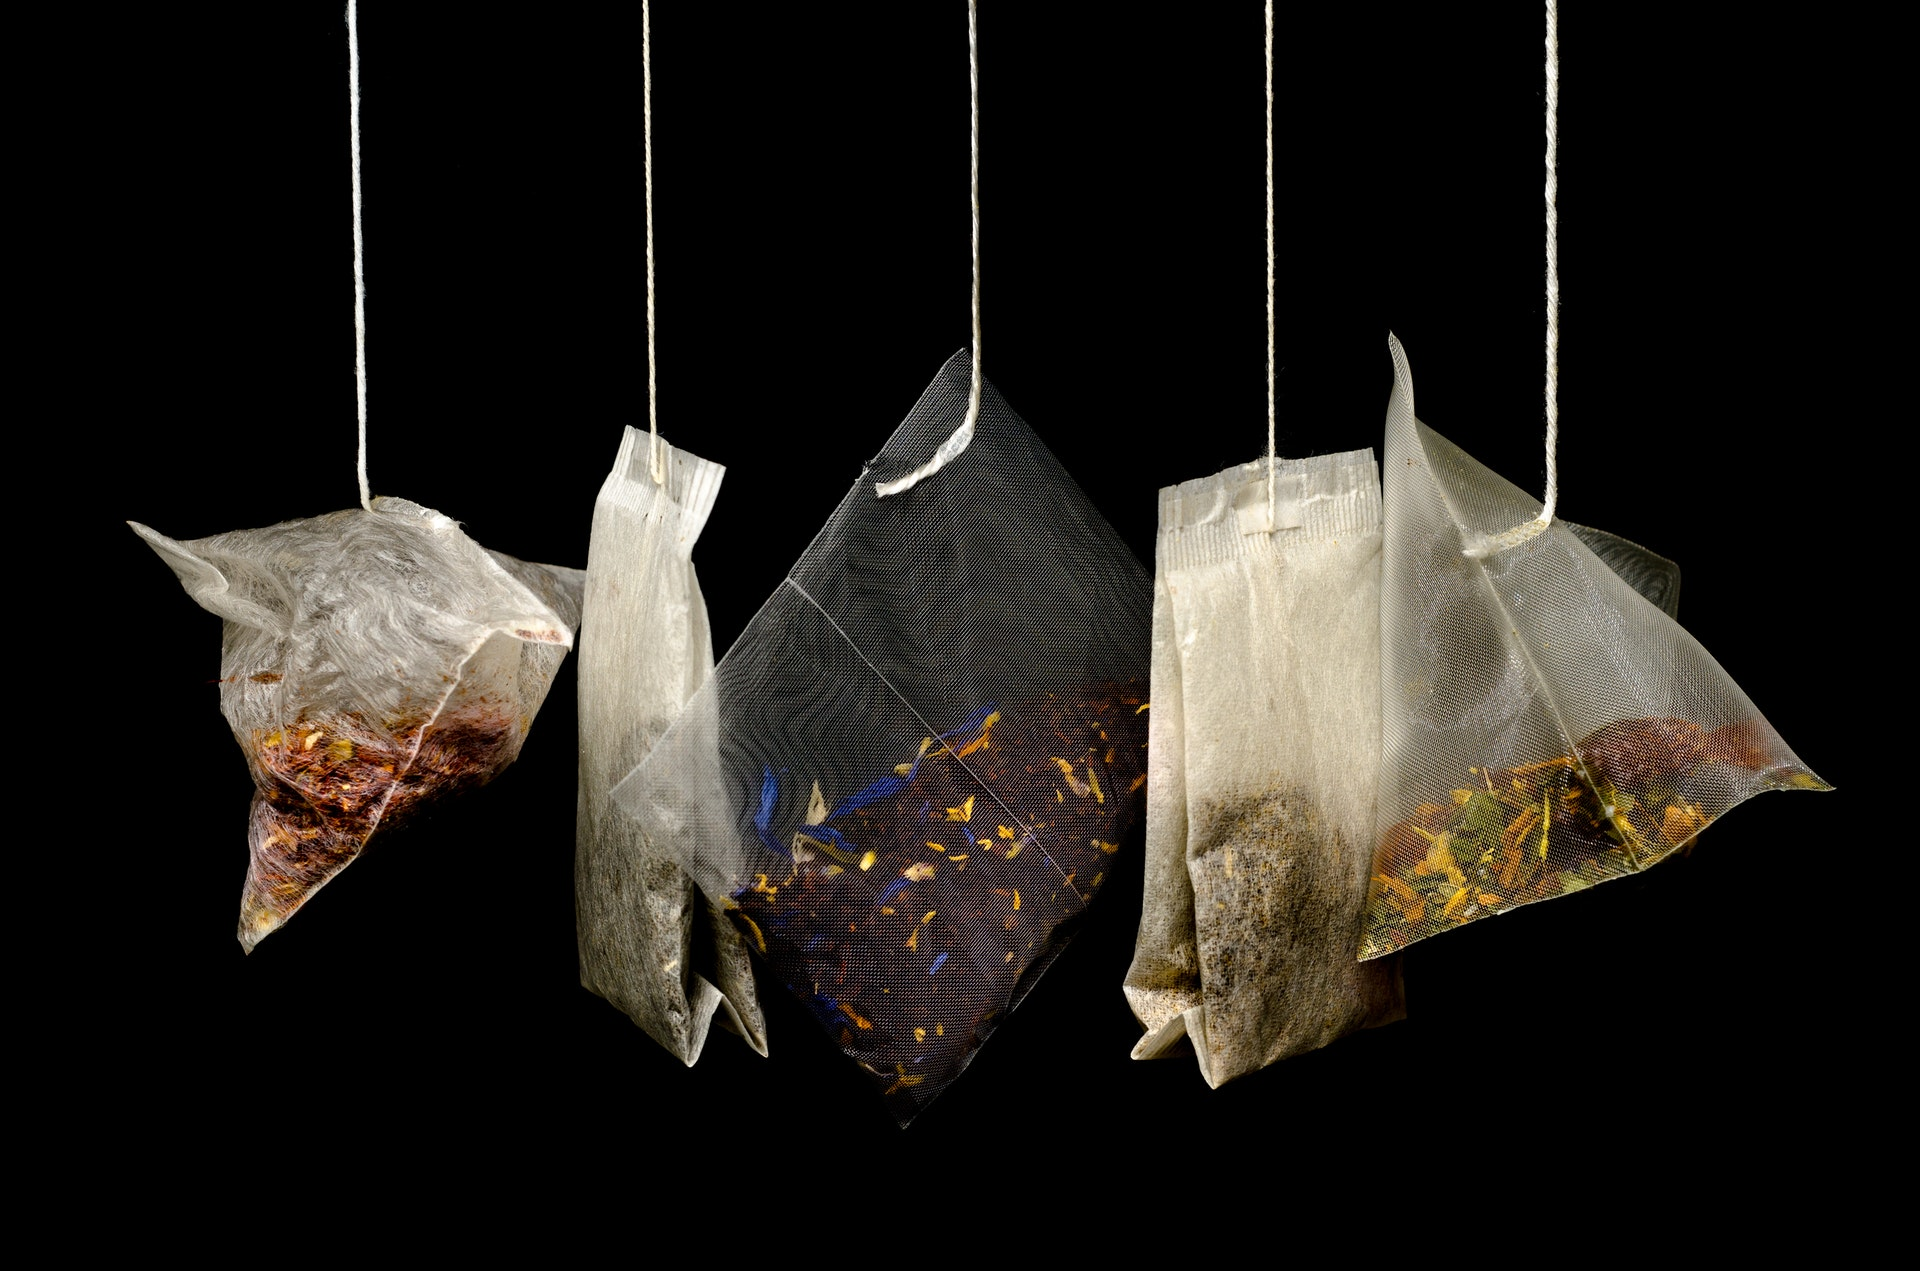 four different types of tea in teabags